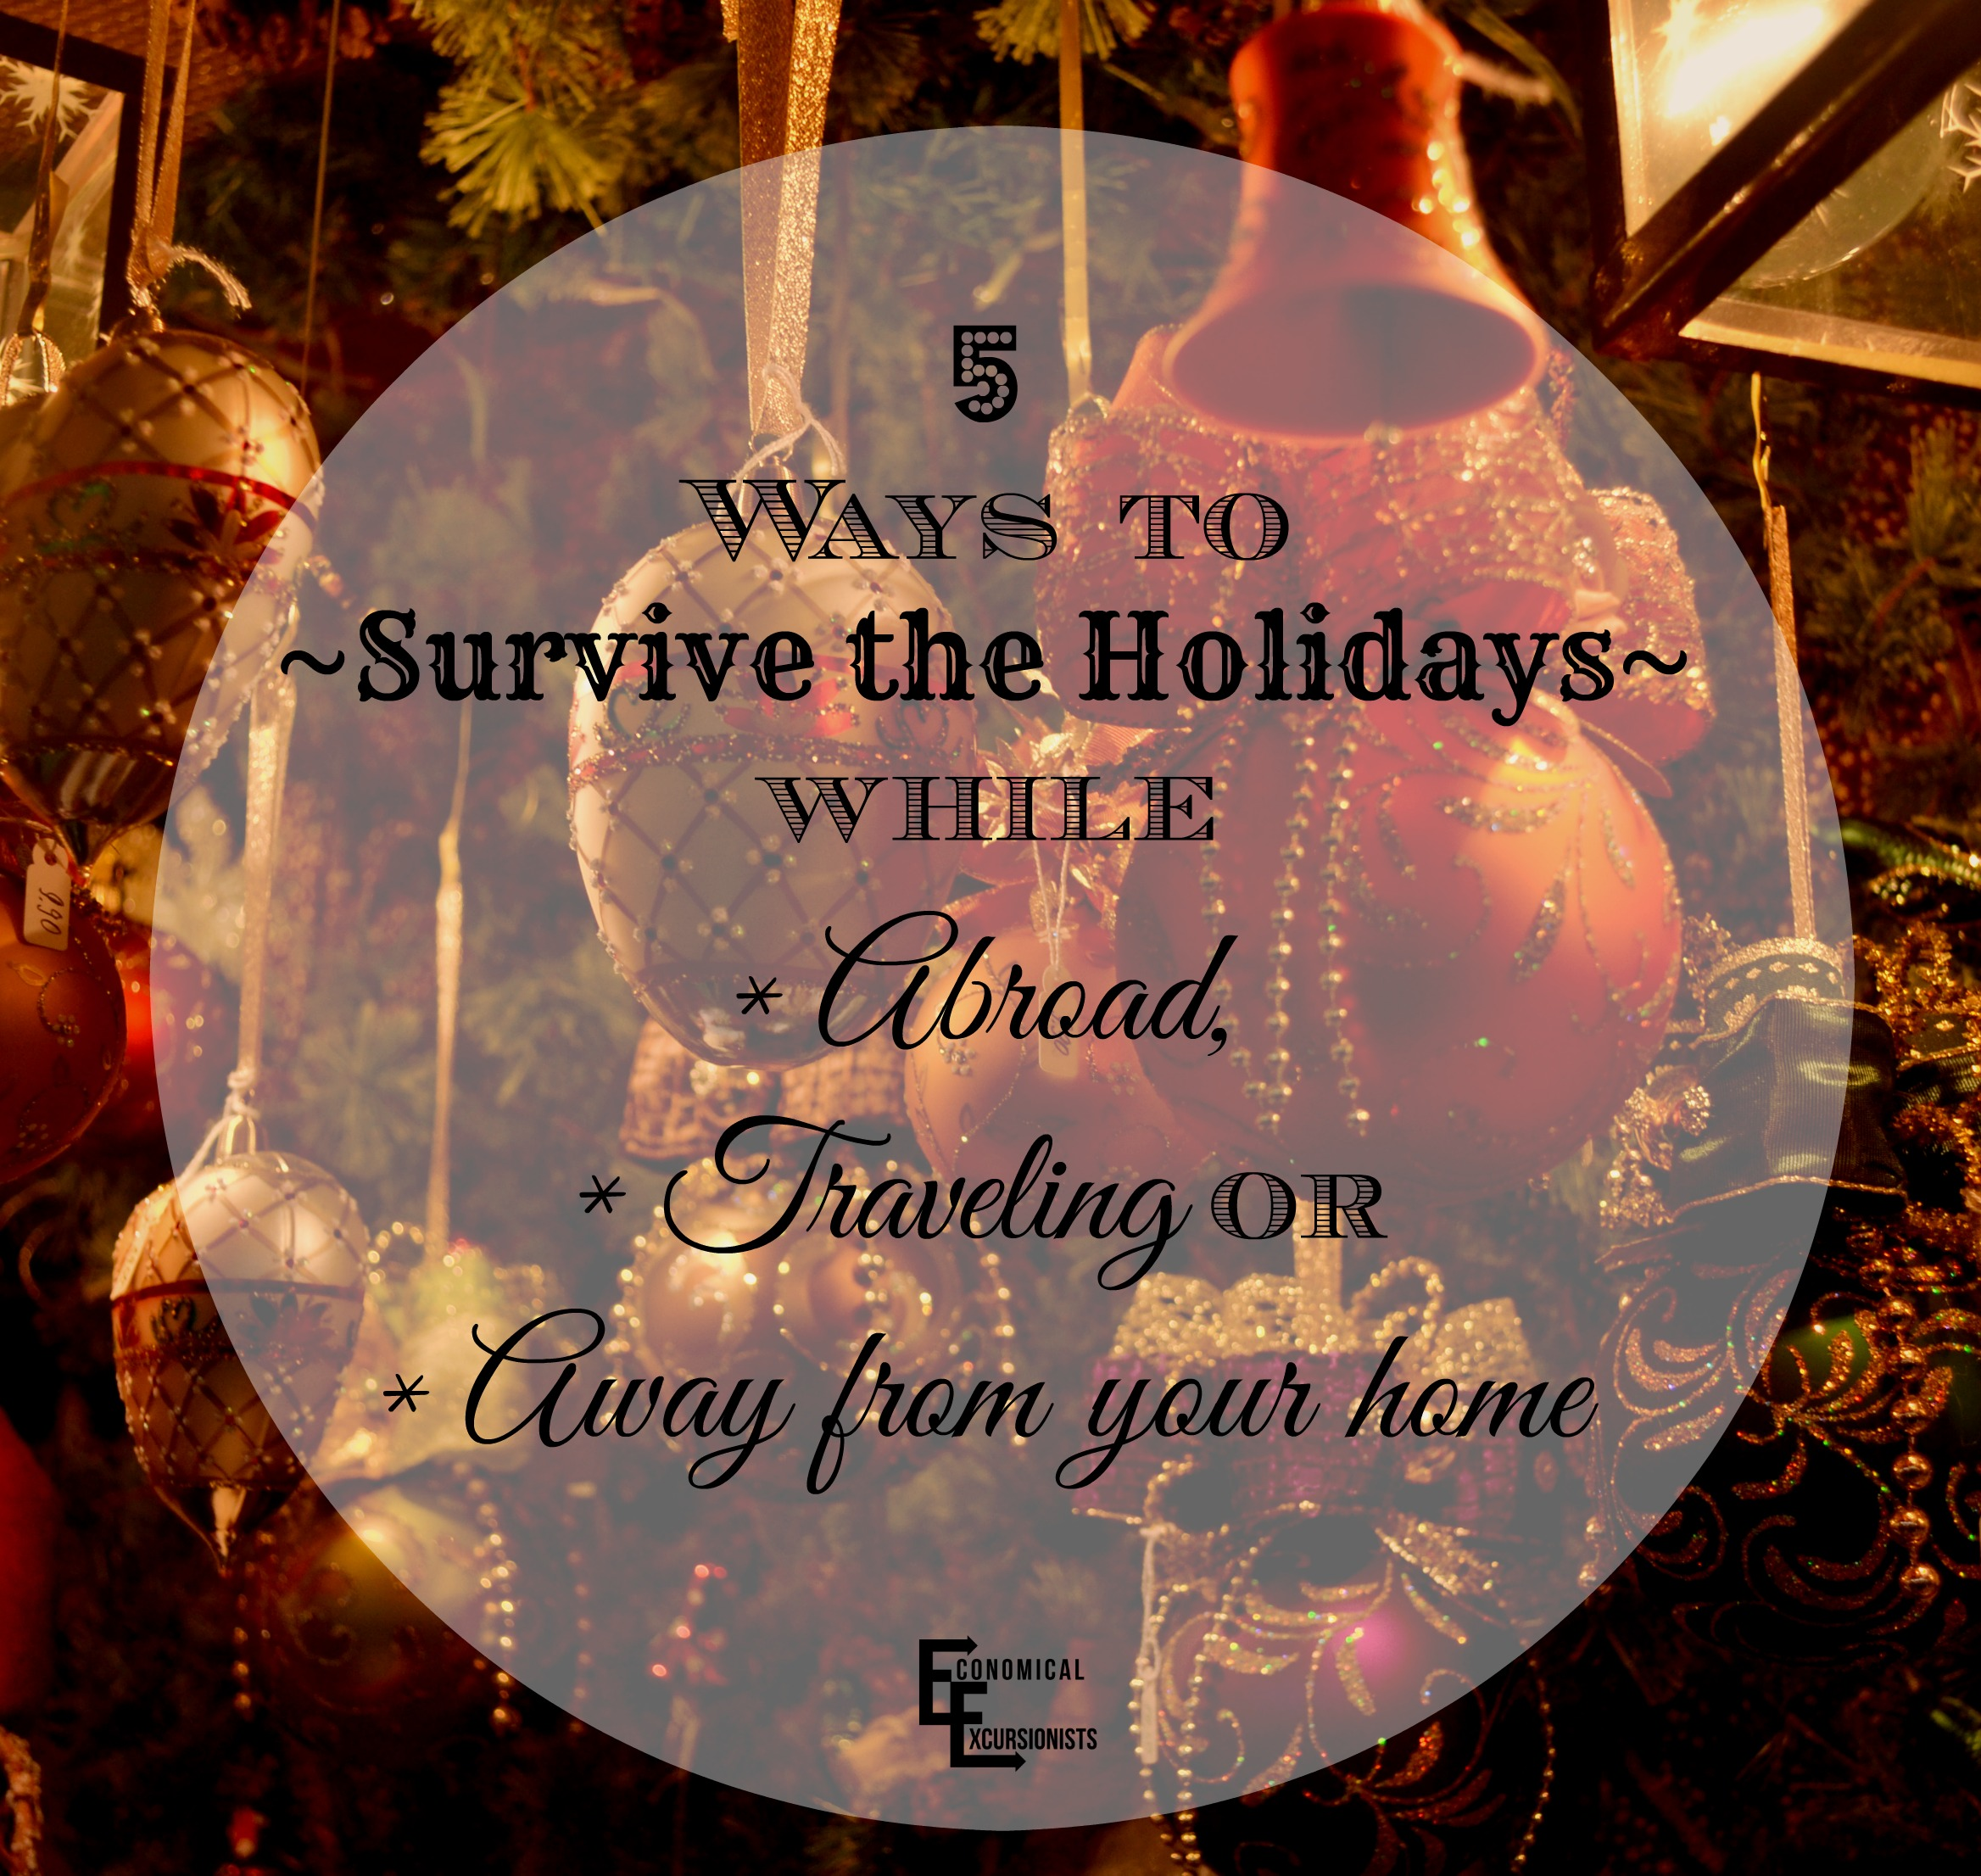 Being gone during the holiday can be HARD. All good tips to remember while traveling this Christmas